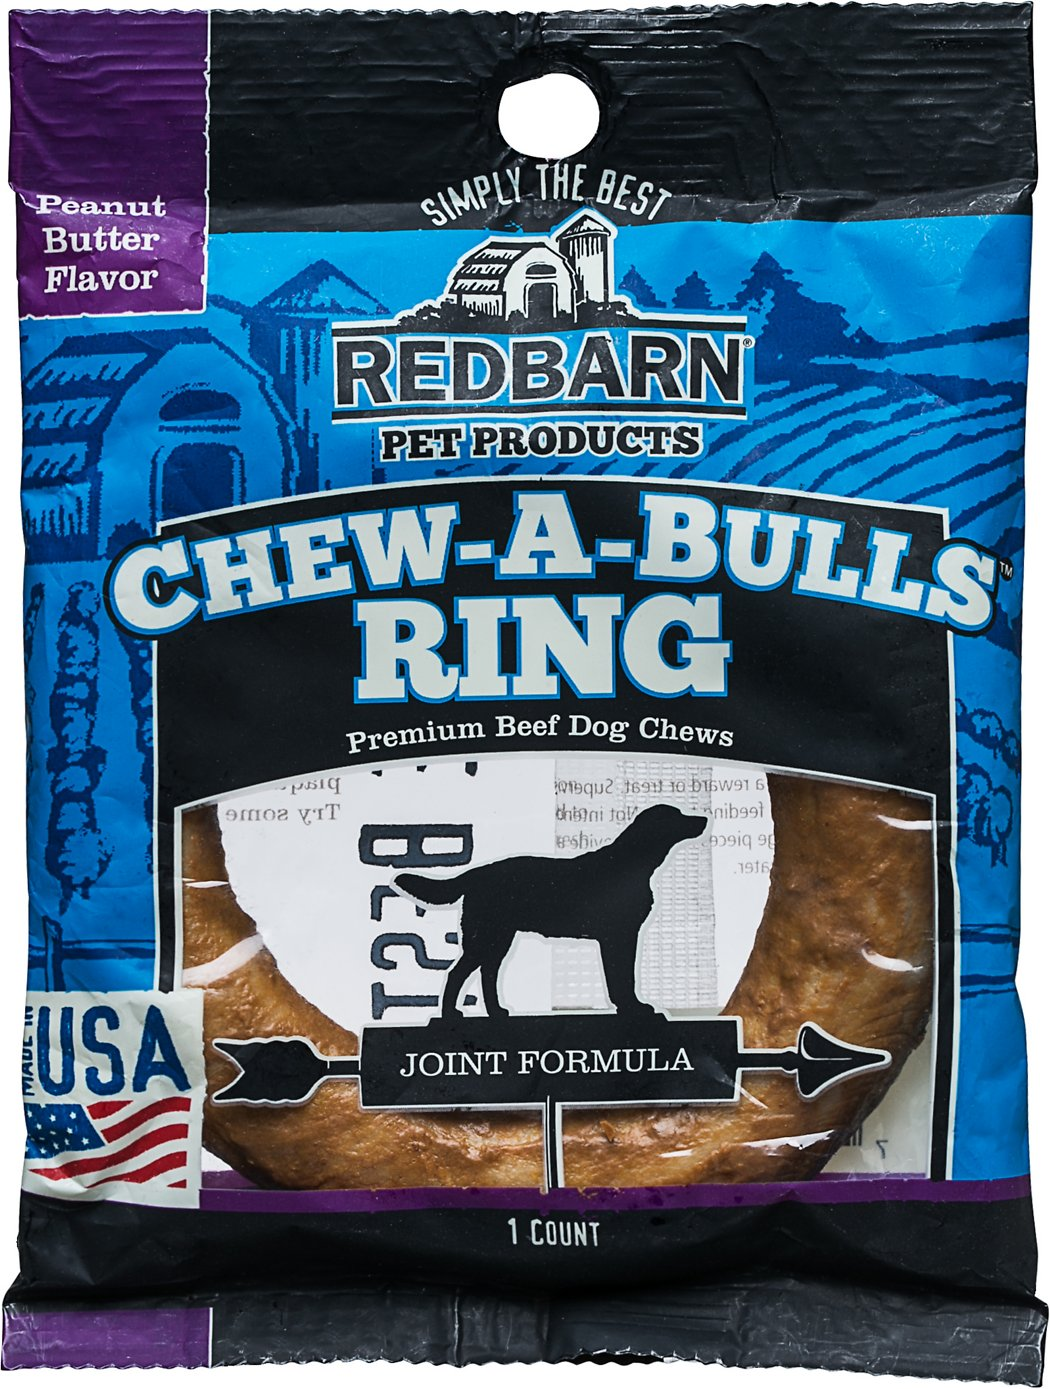 dog chews redbarninc images natural up halloween premium cat well bully dress playing best is as costumes your products redbarn manufacture barns pinterest treats barn source pet red lovers for on we sticks cute food